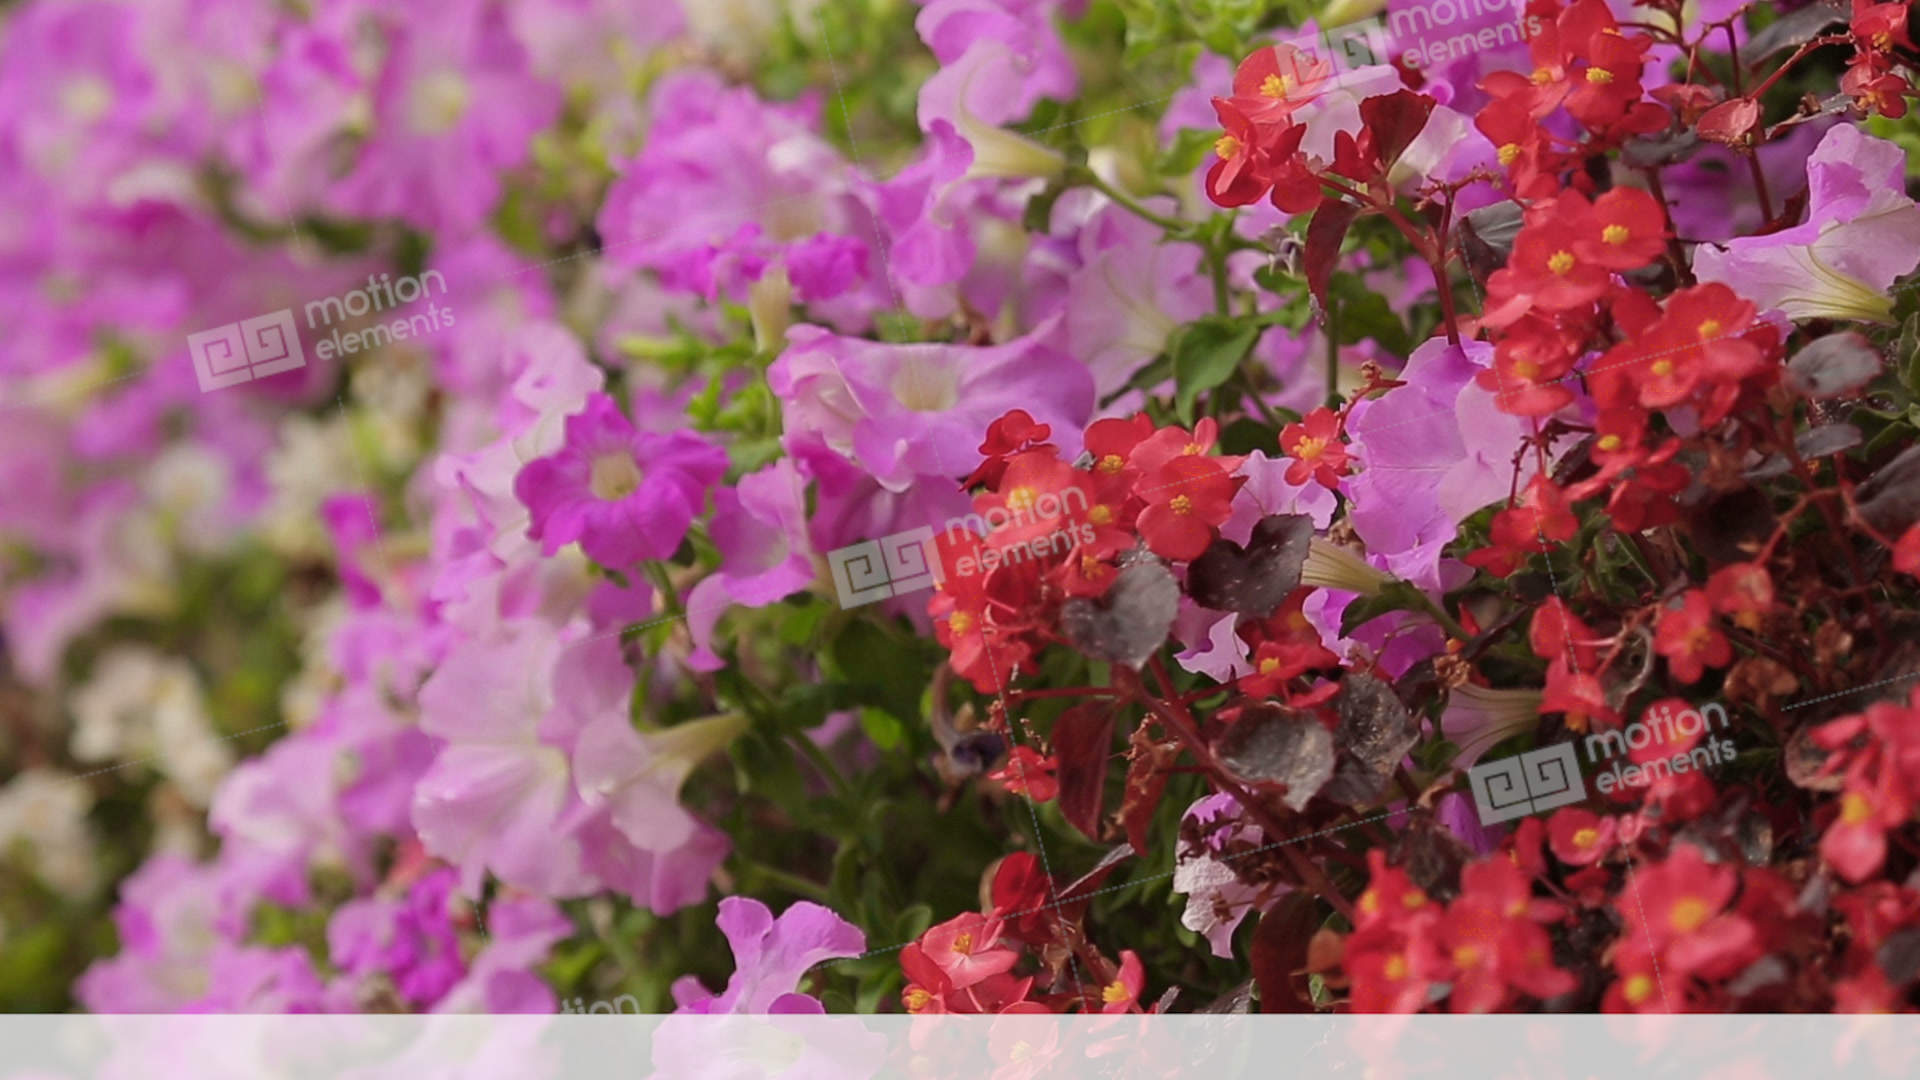 Different Types And Colors Of Flowers On Floral Wall, Stock